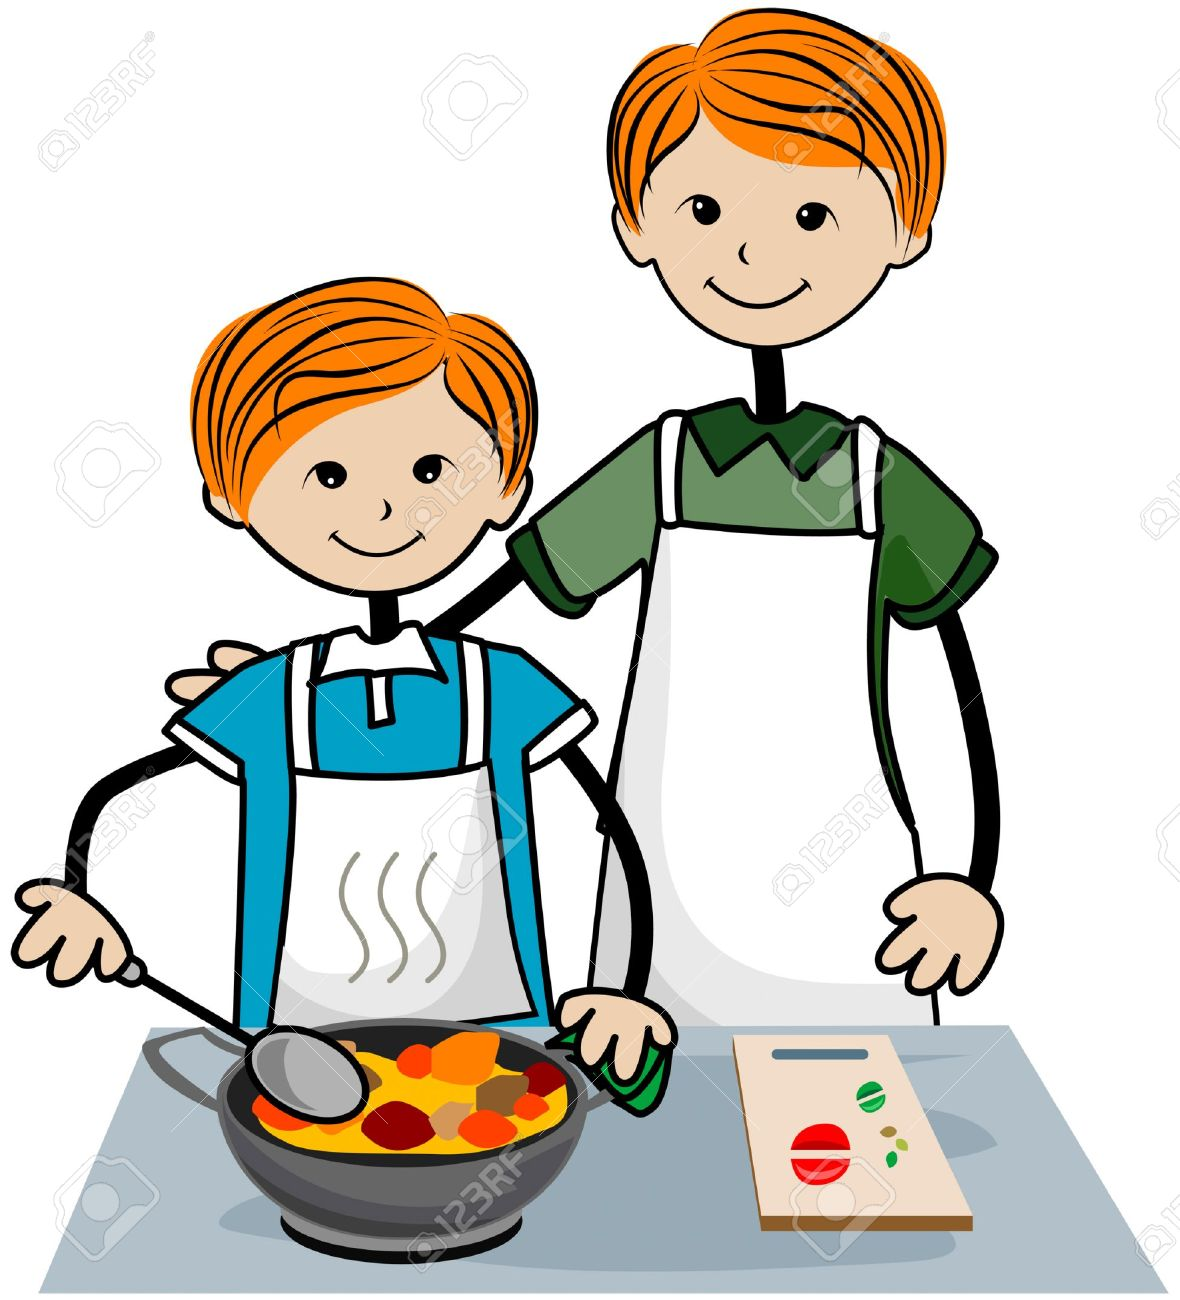 Child And Father Cooking With .-Child And Father Cooking With .-1